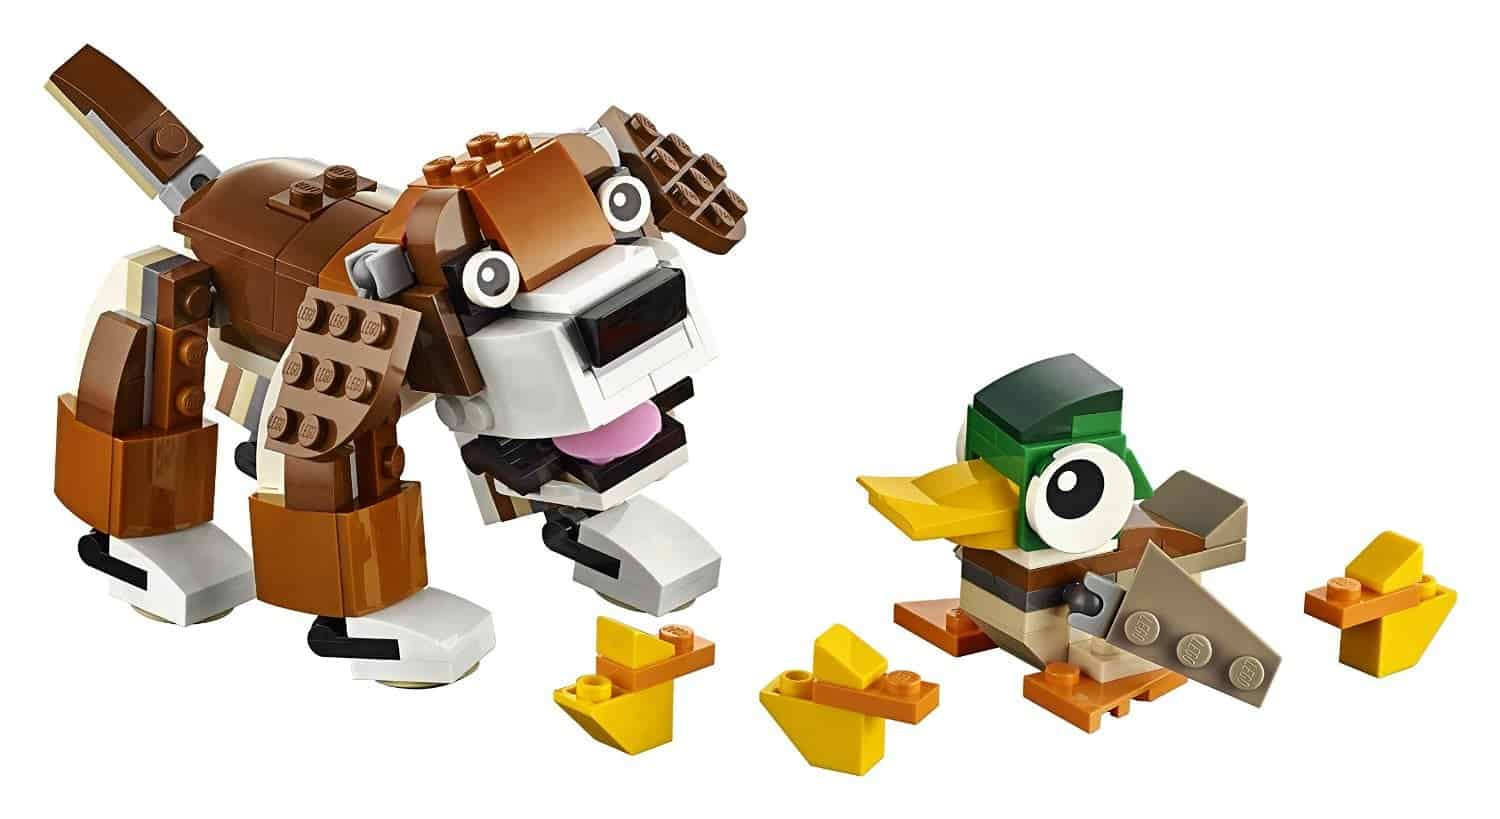 Lego Gift Ideas by Age - Toddler to Twelve Years: Park Animals | www.thepinningmama.com